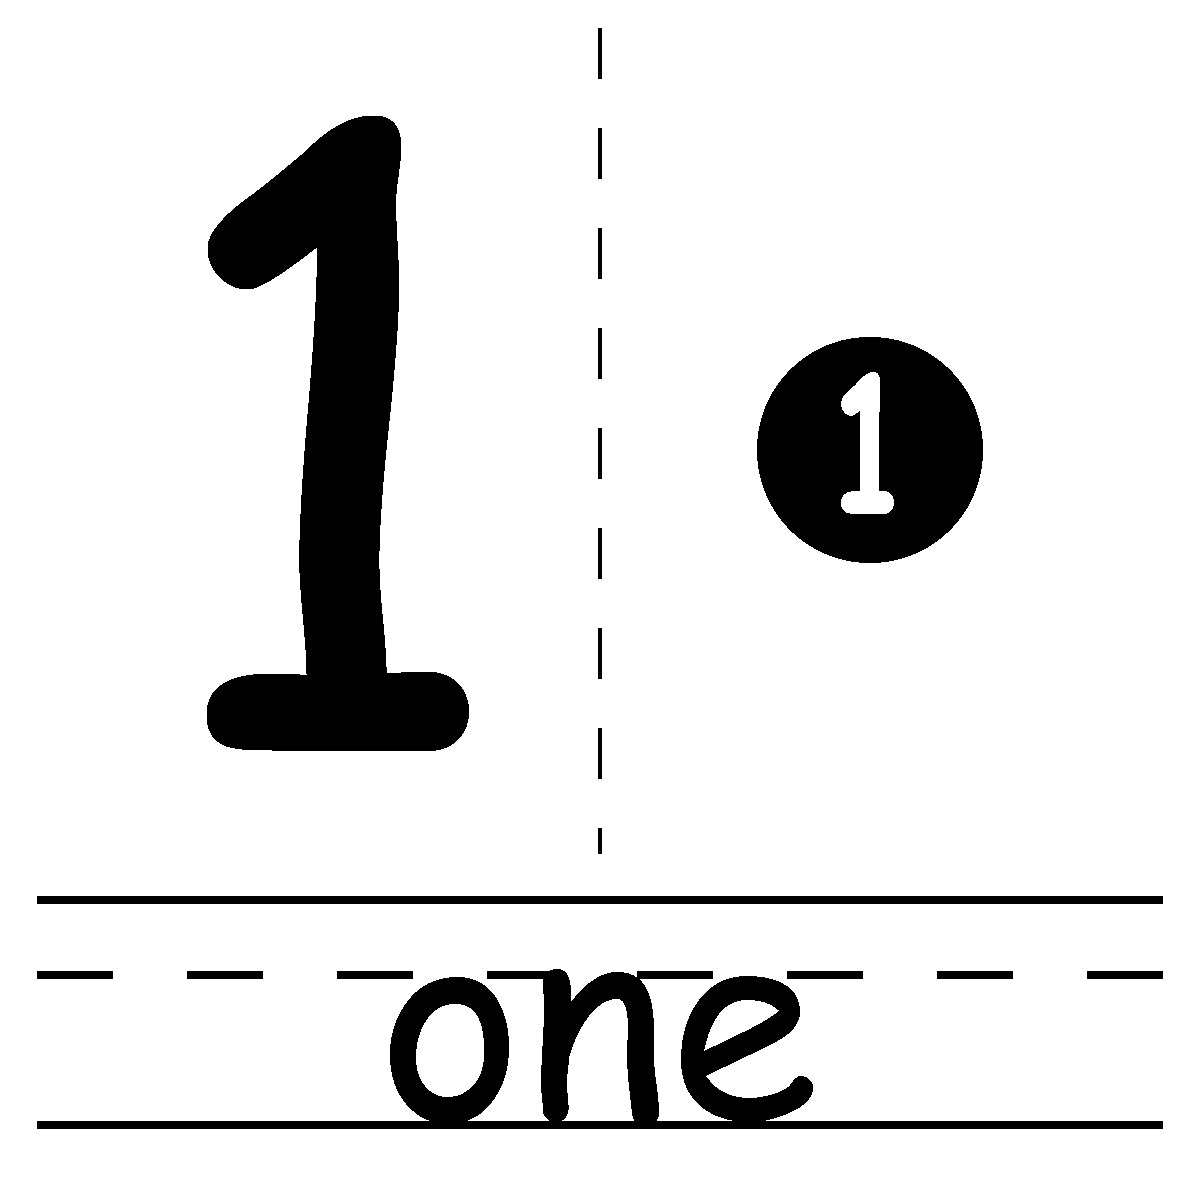 picture of the number 1 sheet